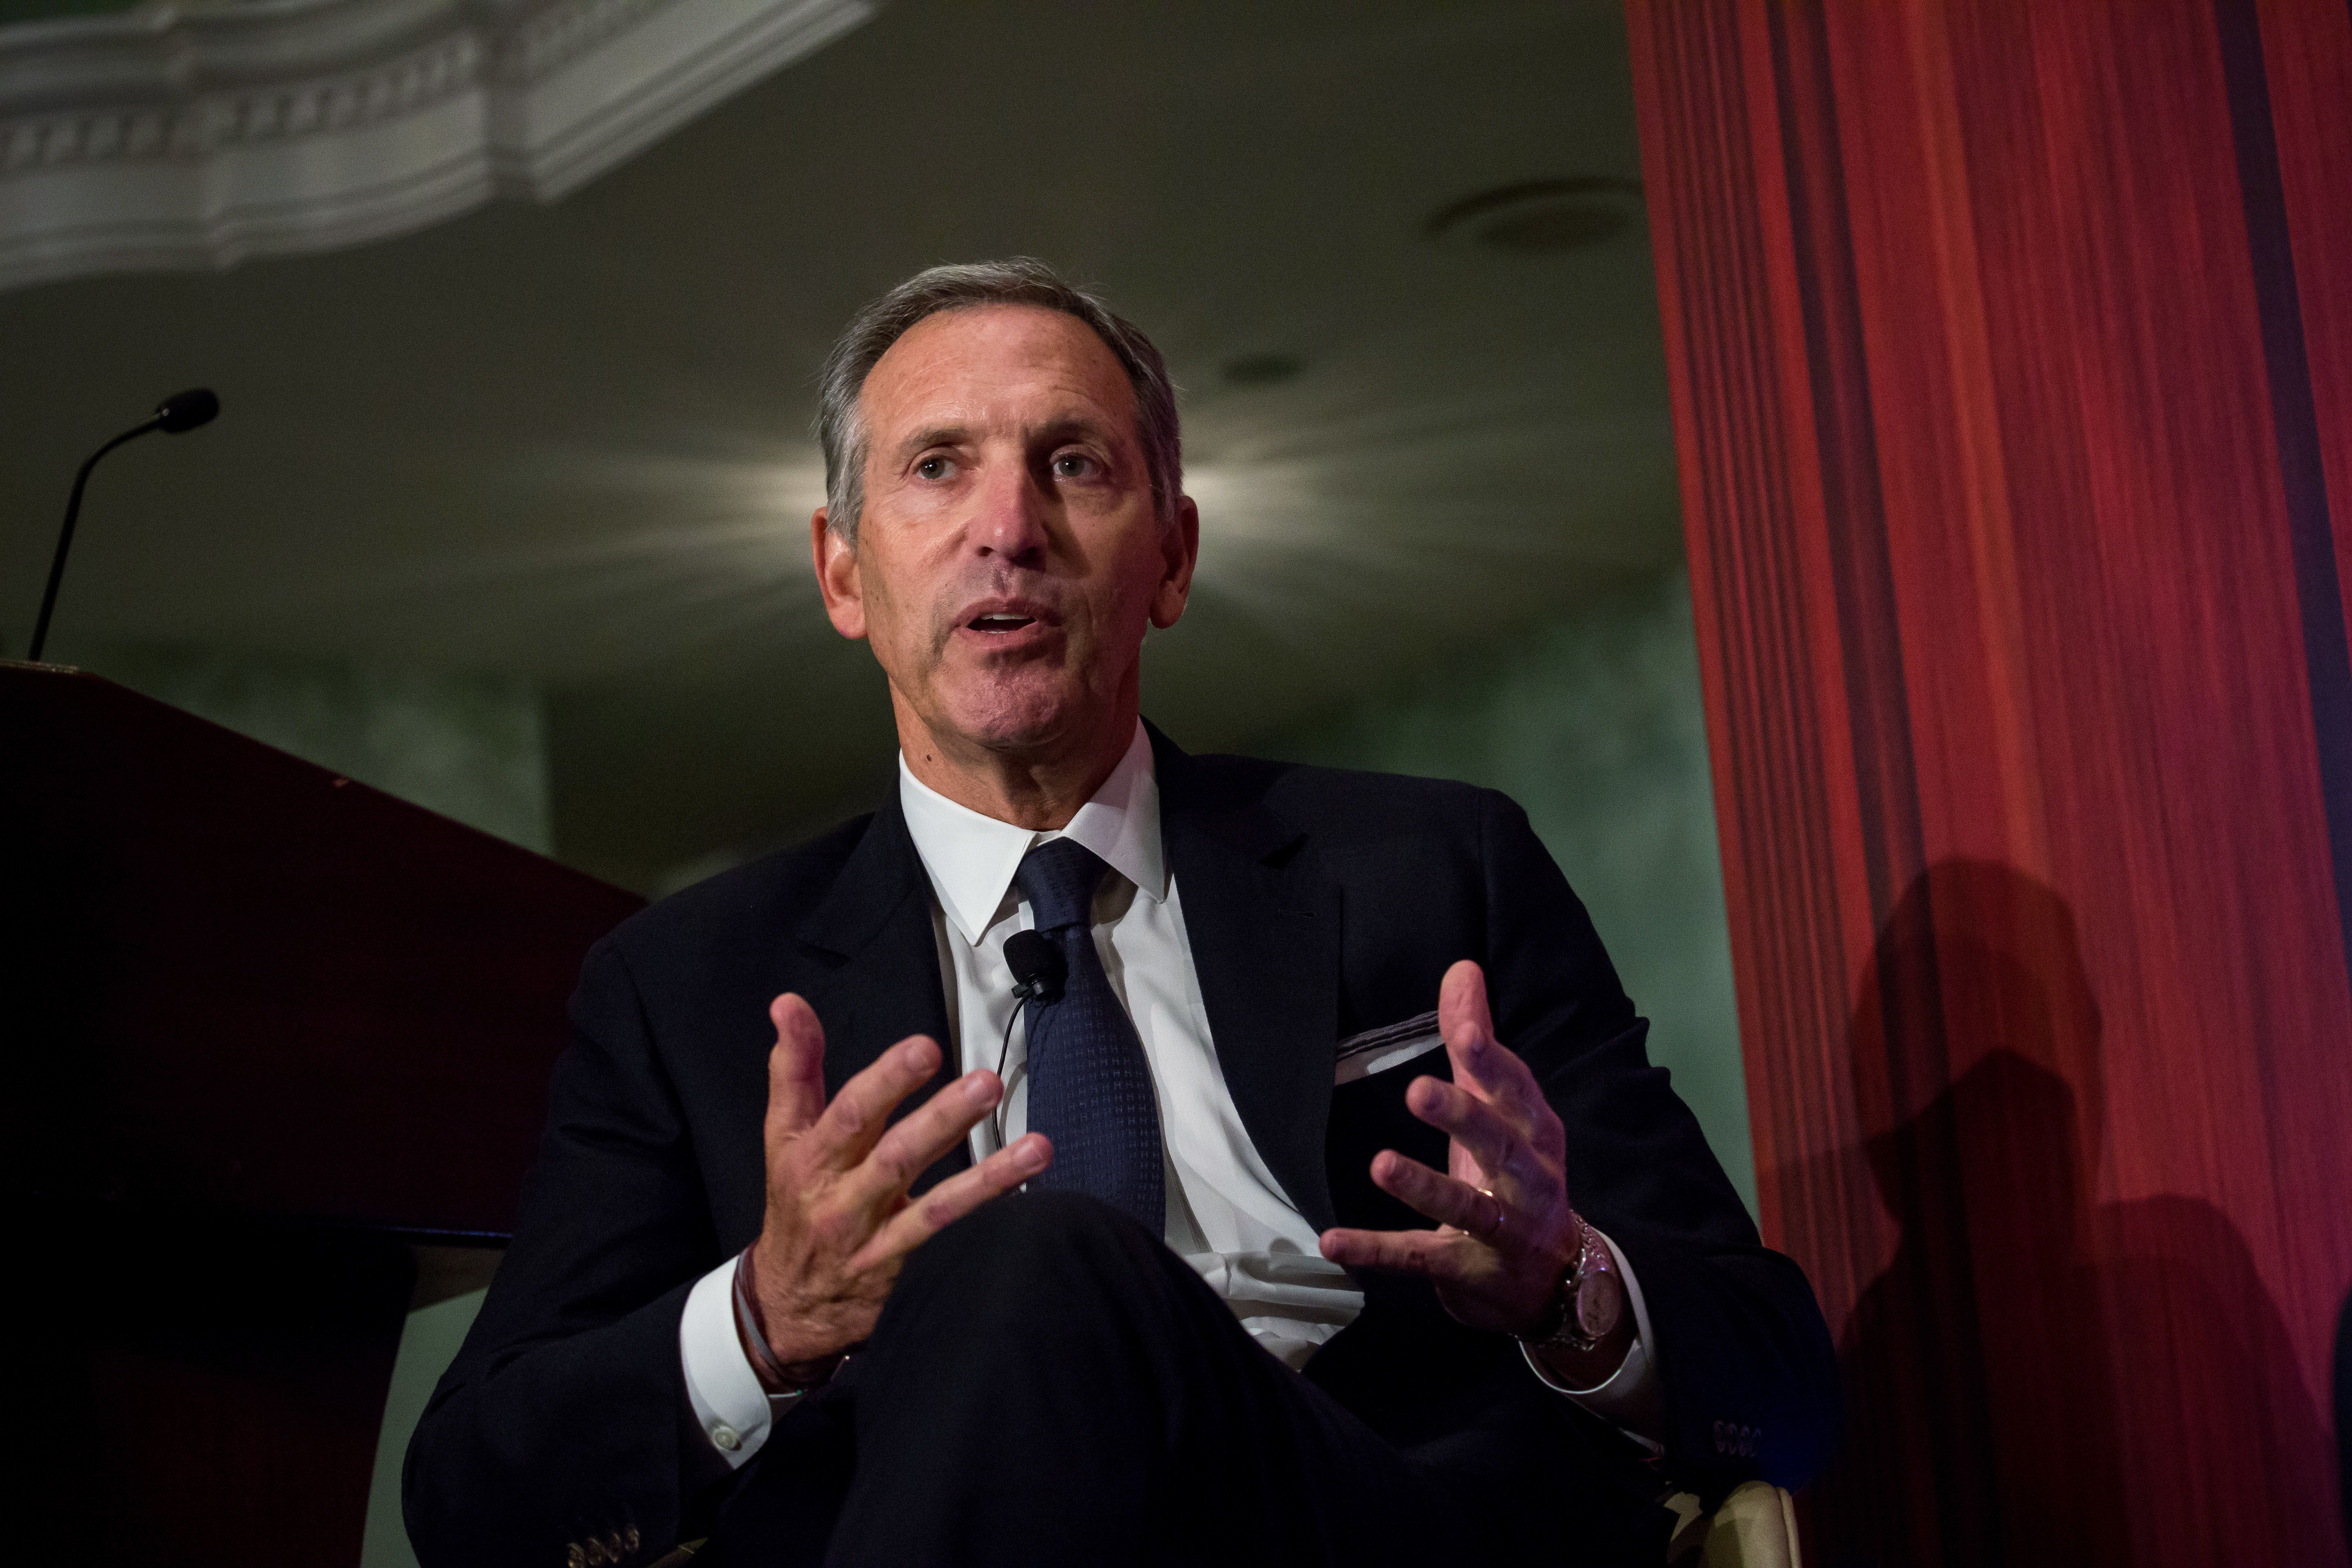 Howard Schultz, chairman and founder of Starbucks Corp., speaks during a conference at the Economic Club of New York in New York, U.S., on Wednesday, May 24, 2017. Schultz said the company has taken stances on political issues such as race and gun violence because it has a social responsibility. Photographer: Michael Nagle/Bloomberg via Getty Images